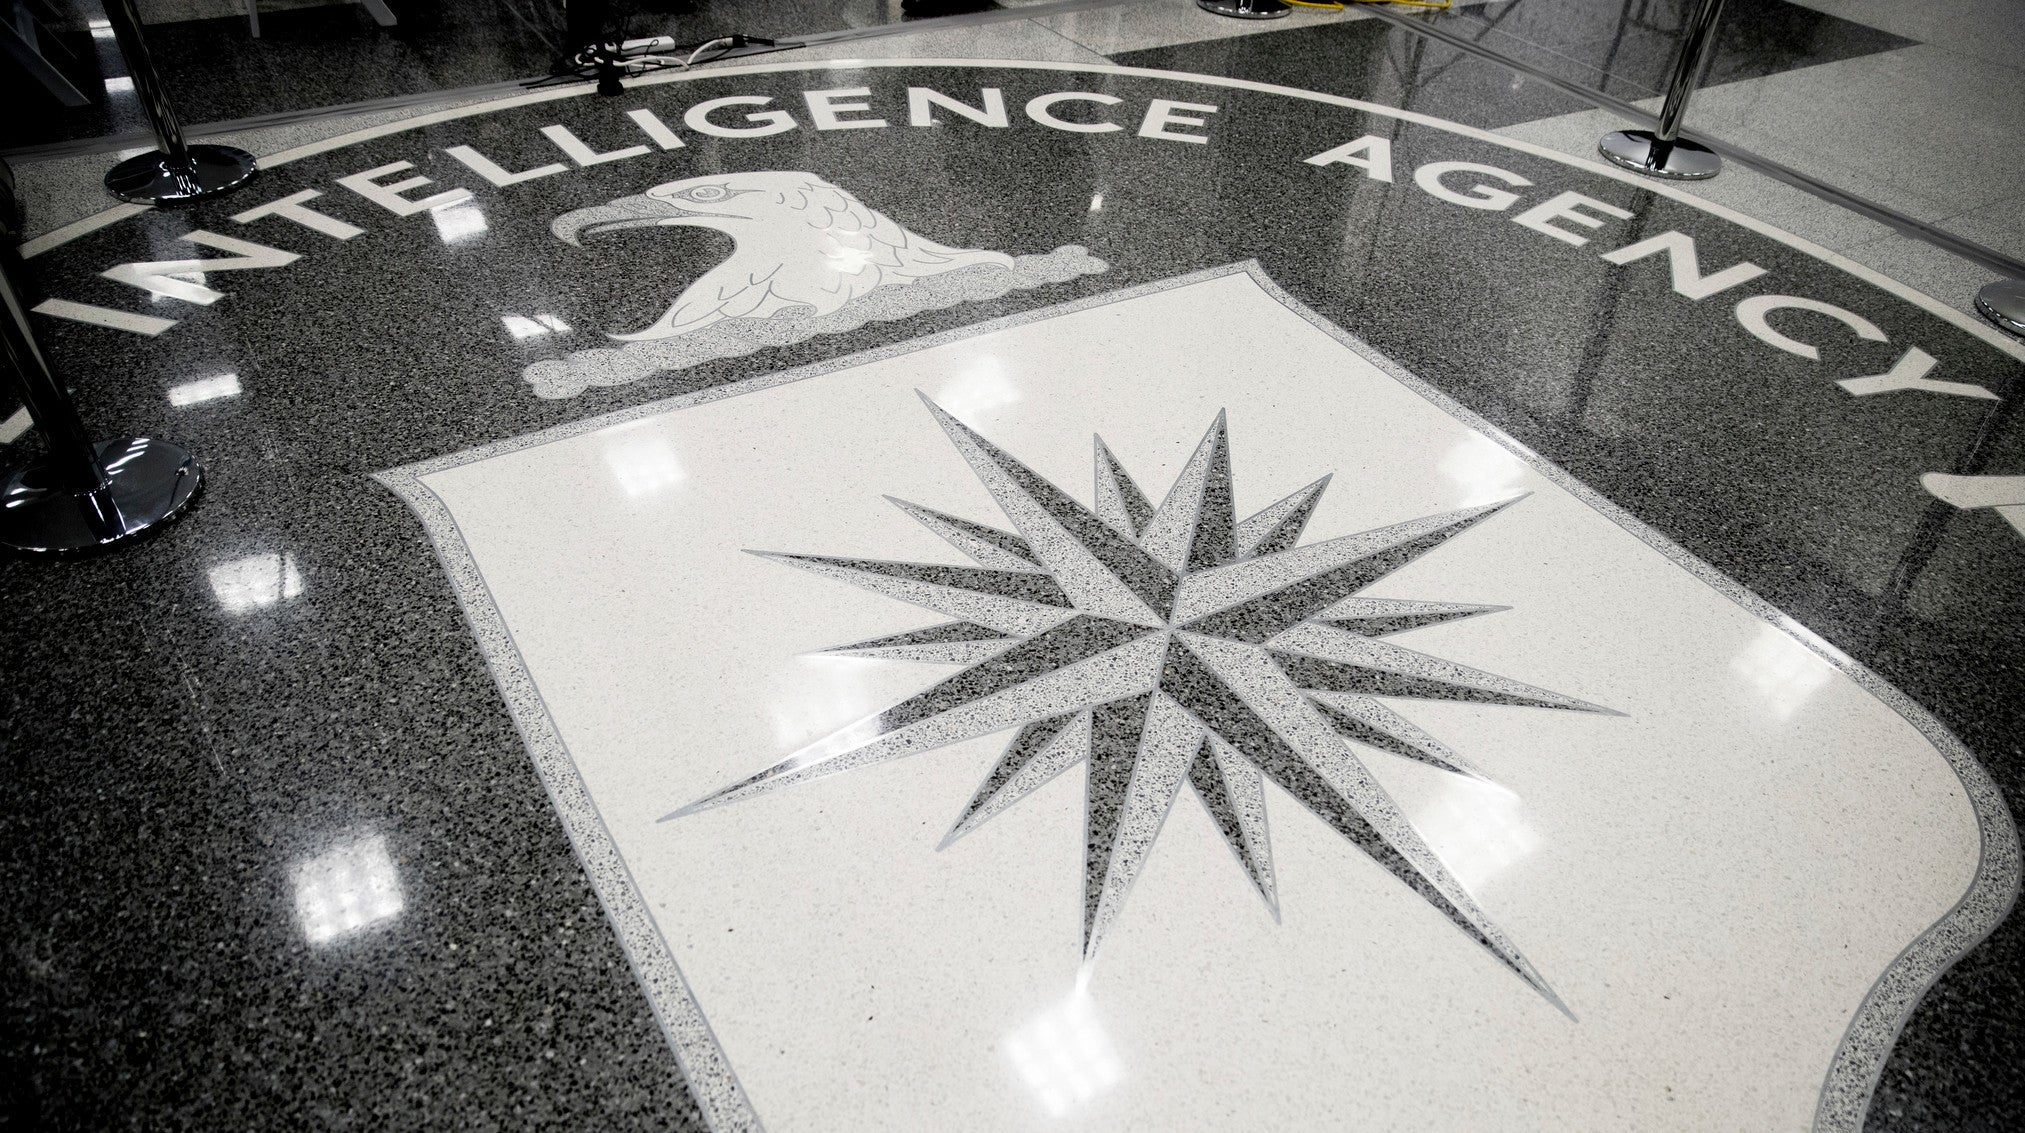 Lawyers For Accused CIA Leaker Joshua Schulte Say He Was Picked As Scapegoat For Being 'a Pain In The Arse'